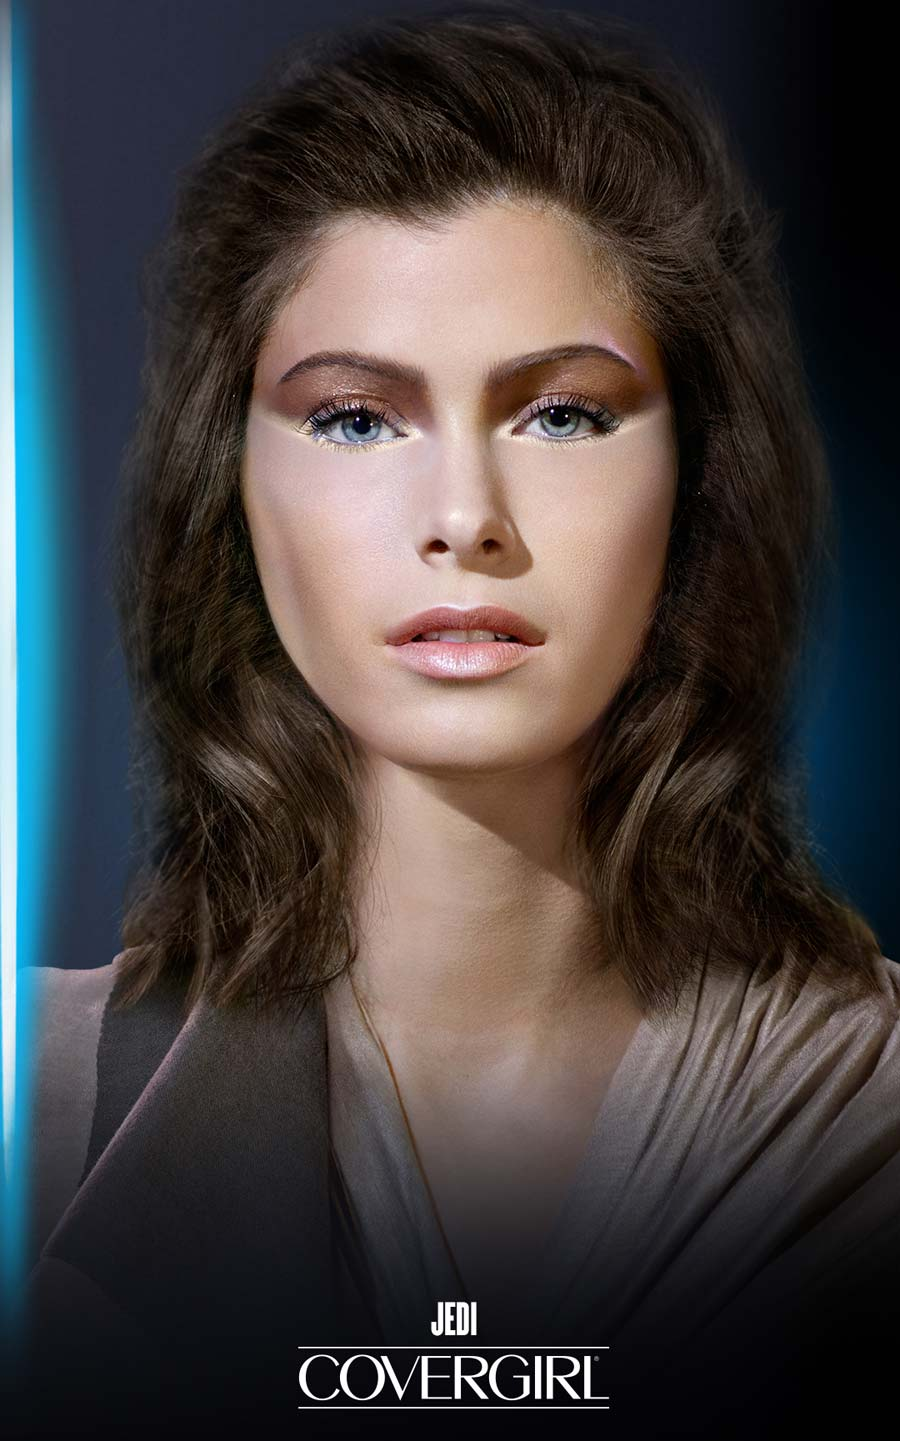 star-wars-covergirl-look-002